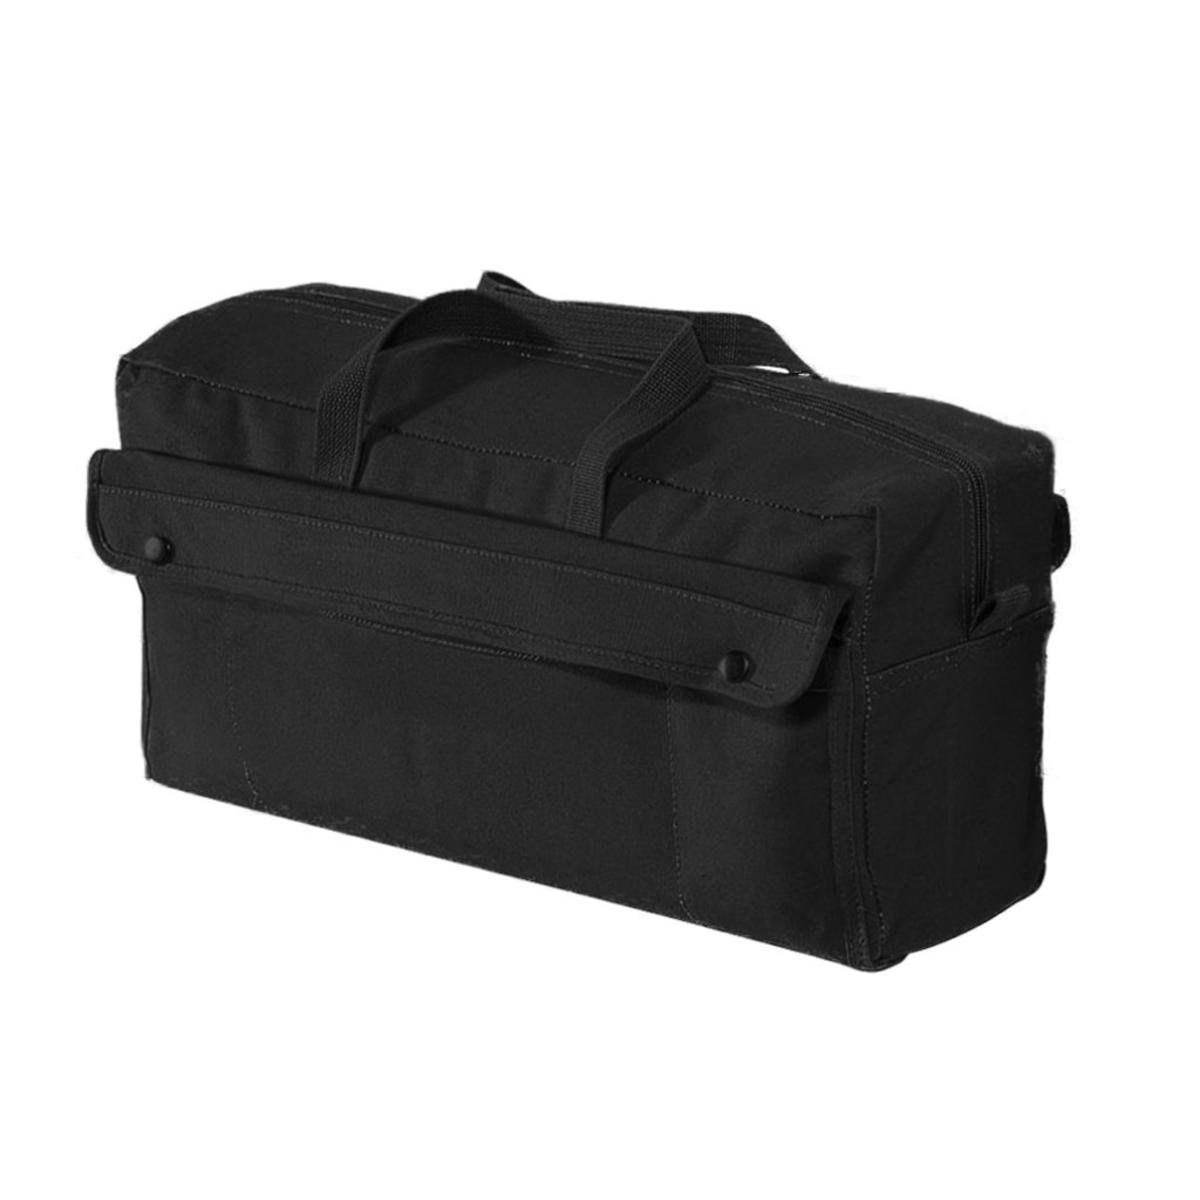 Rothco Canvas Jumbo Mechanic Tool Bag, Black